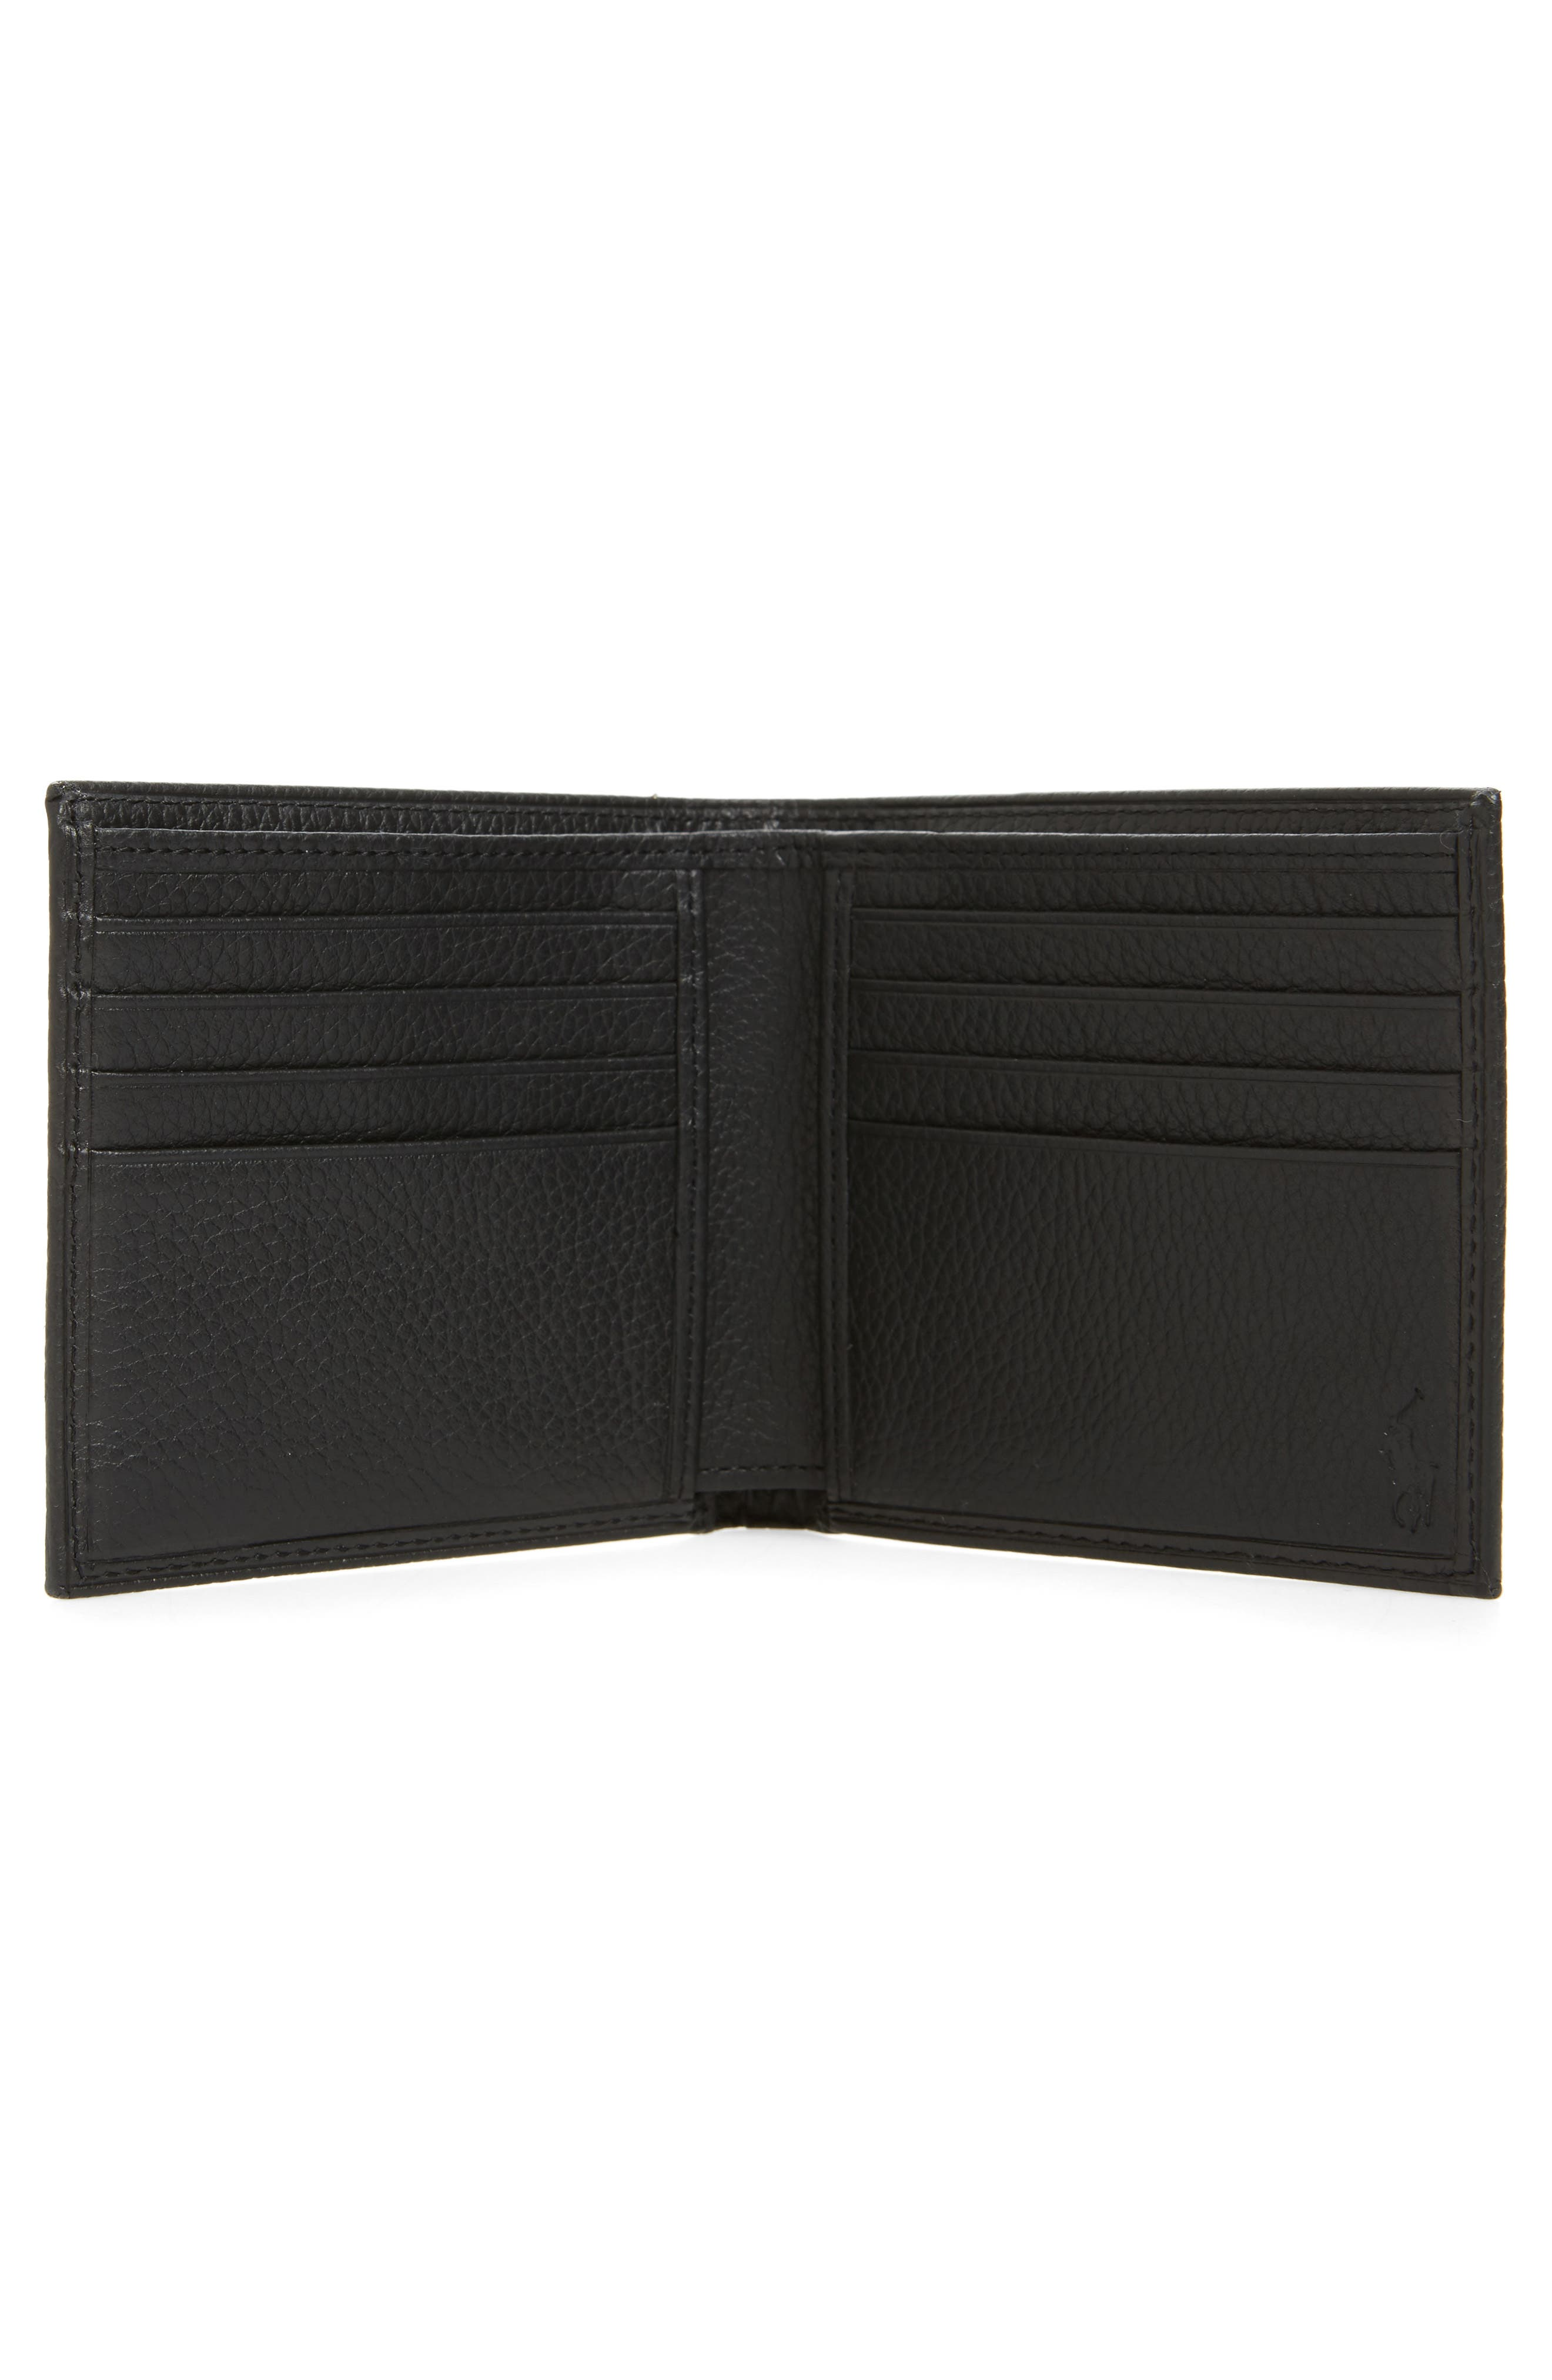 Leather Wallet,                             Alternate thumbnail 5, color,